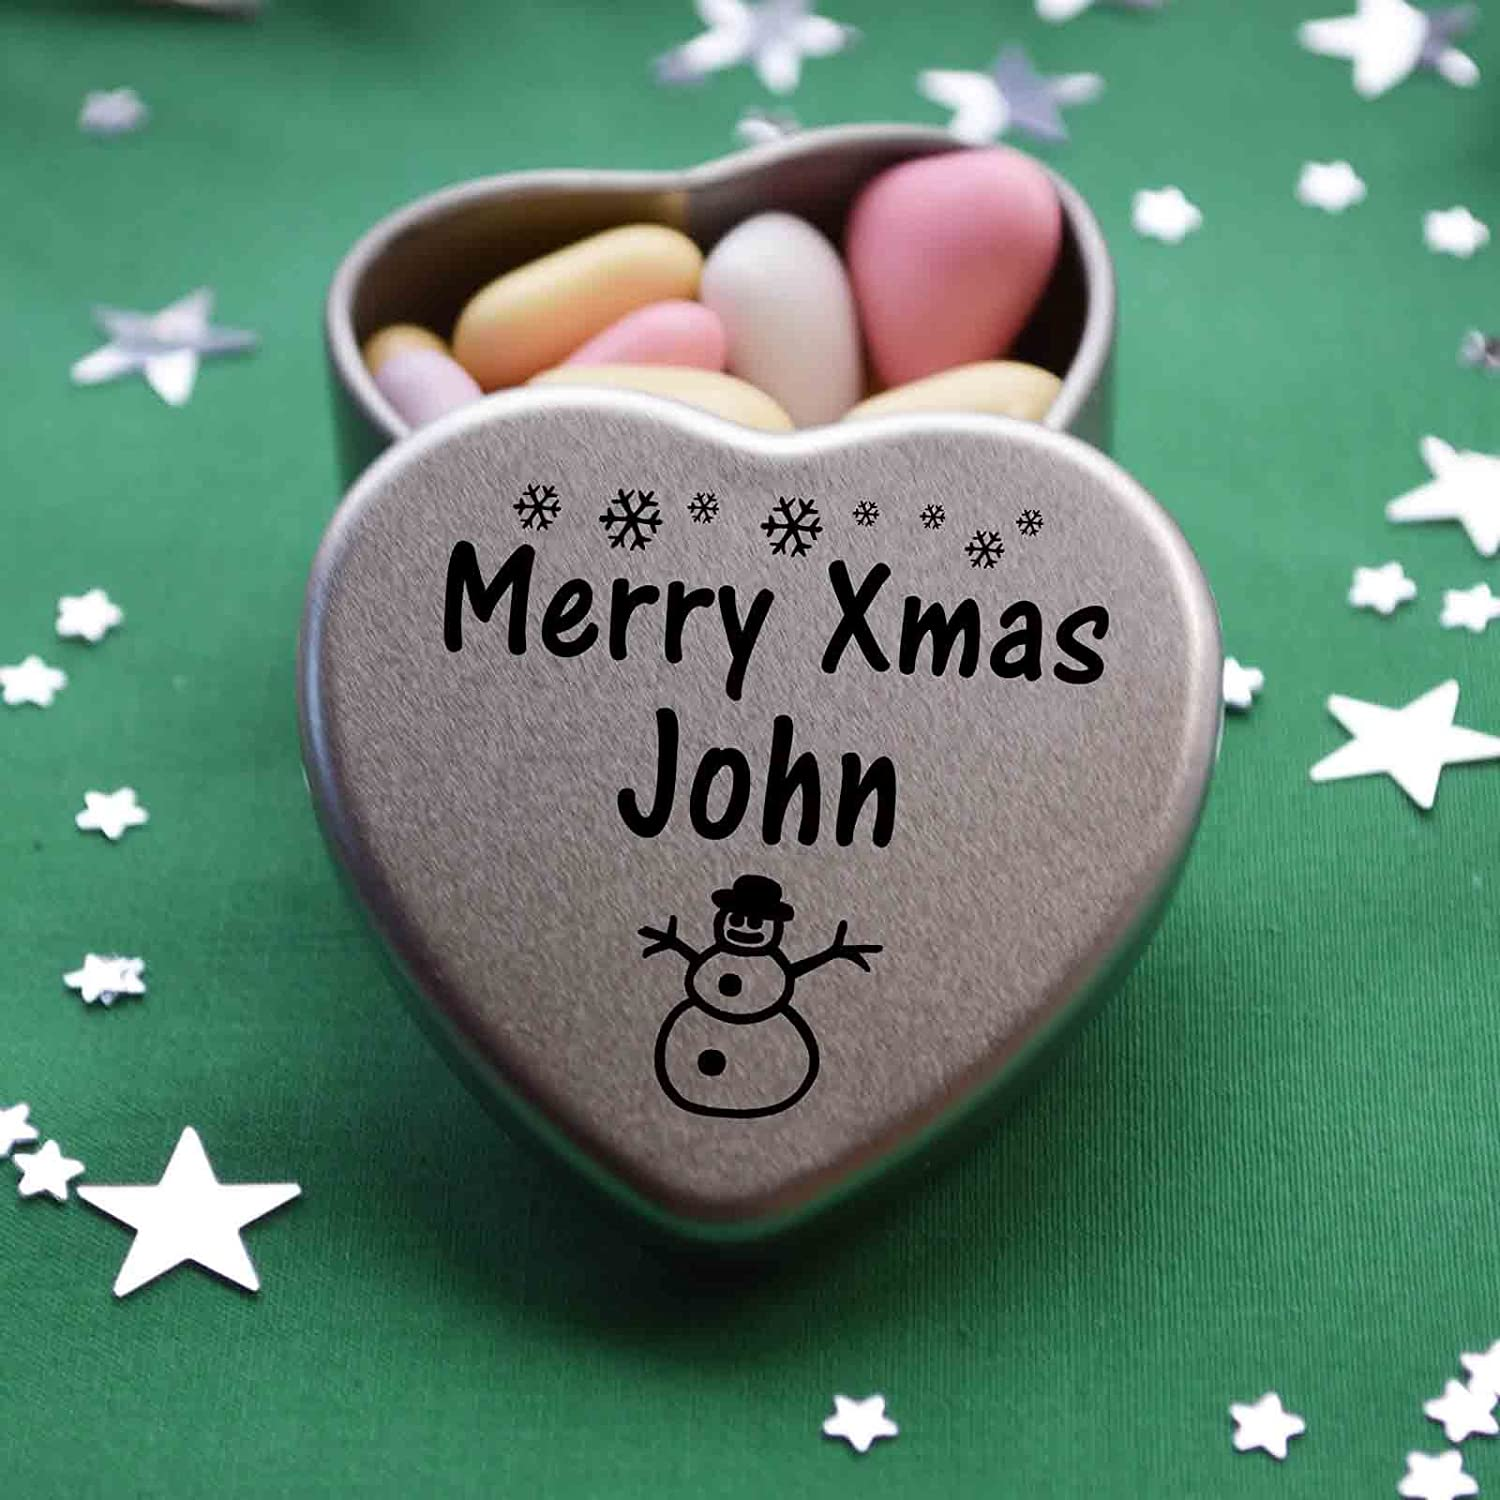 Merry Xmas John Mini Heart Gift Tin with Chocolates Fits Beautifully in the palm of your hand. Great Christmas Present for John Makes the perfect Stocking Filler or Card alternative. Tin Dimensions 45mmx45mmx20mm. Three designs Available, Father Christmas